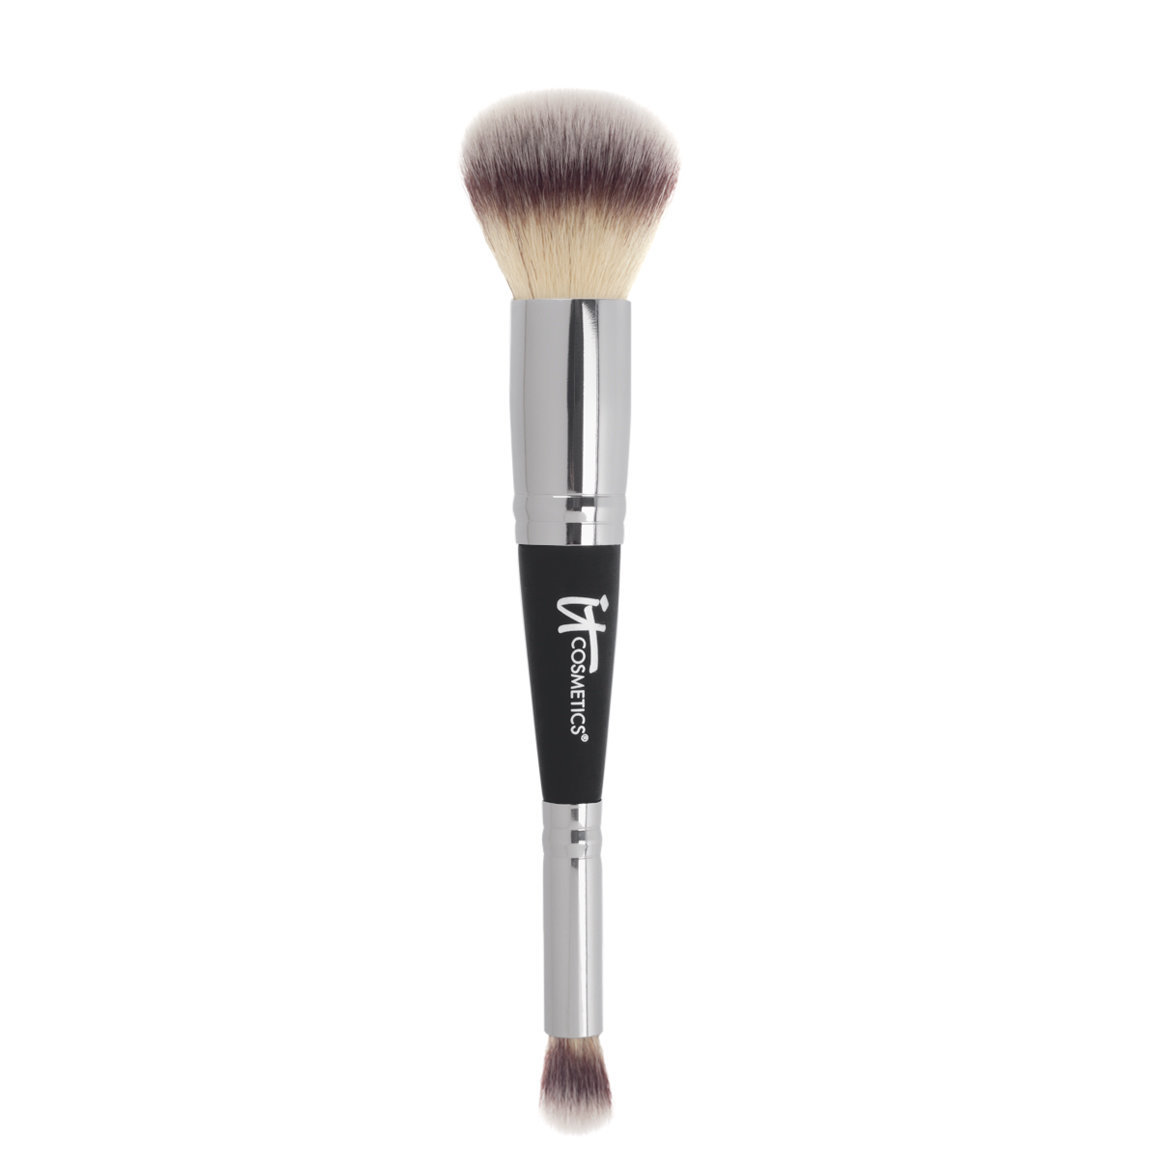 IT Cosmetics  Heavenly Luxe Complexion Perfection Brush #7 product swatch.